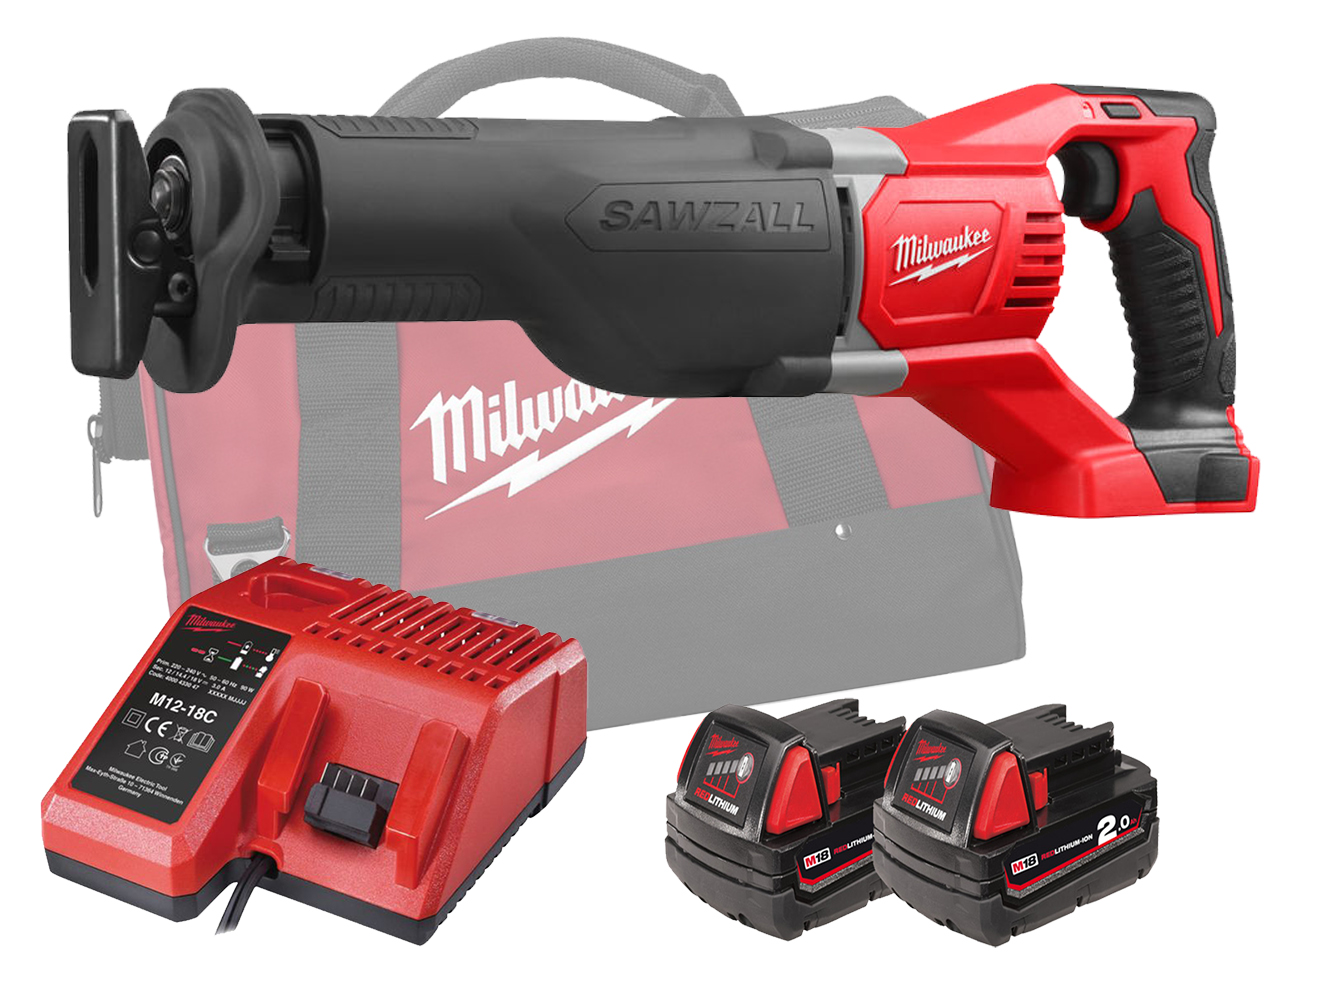 MILWAUKEE 18V BRUSHED RECIPROCATING SAW - M18BSX - 2.0AH PACK